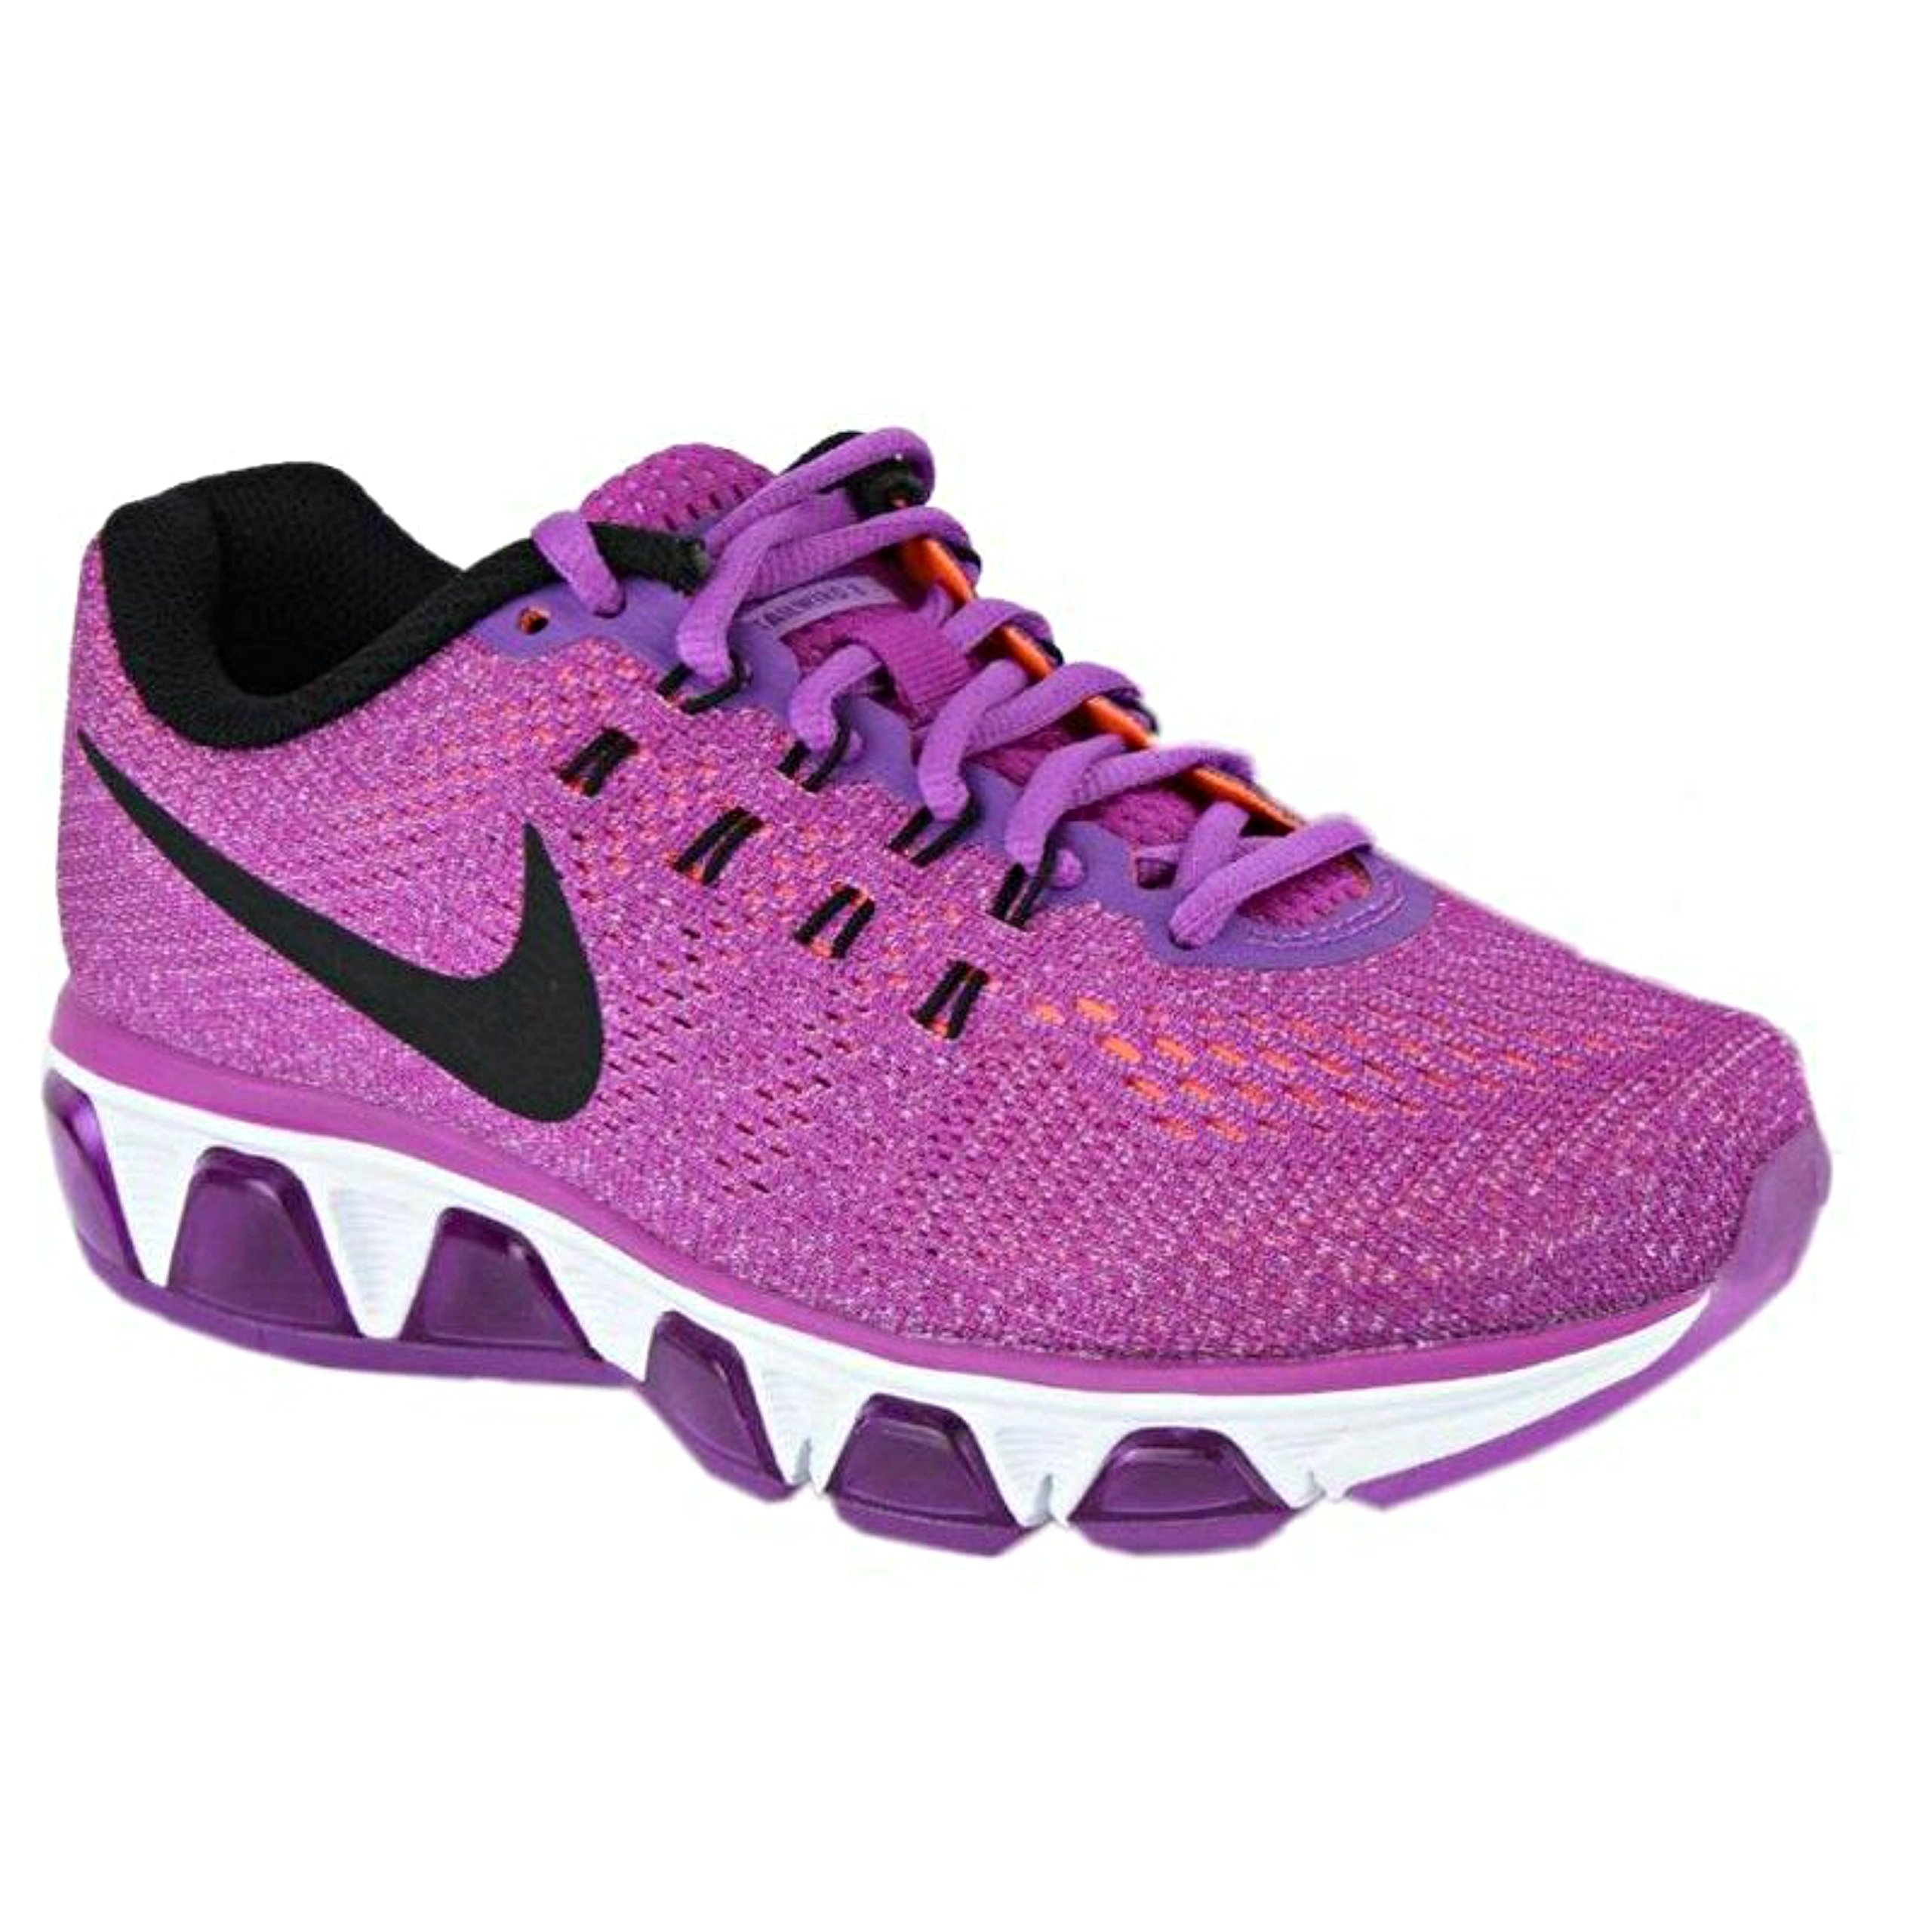 cef8e80ff5 ... where can i buy womens nike air max tailwind 8 vivid purple black hyper  orange 805942